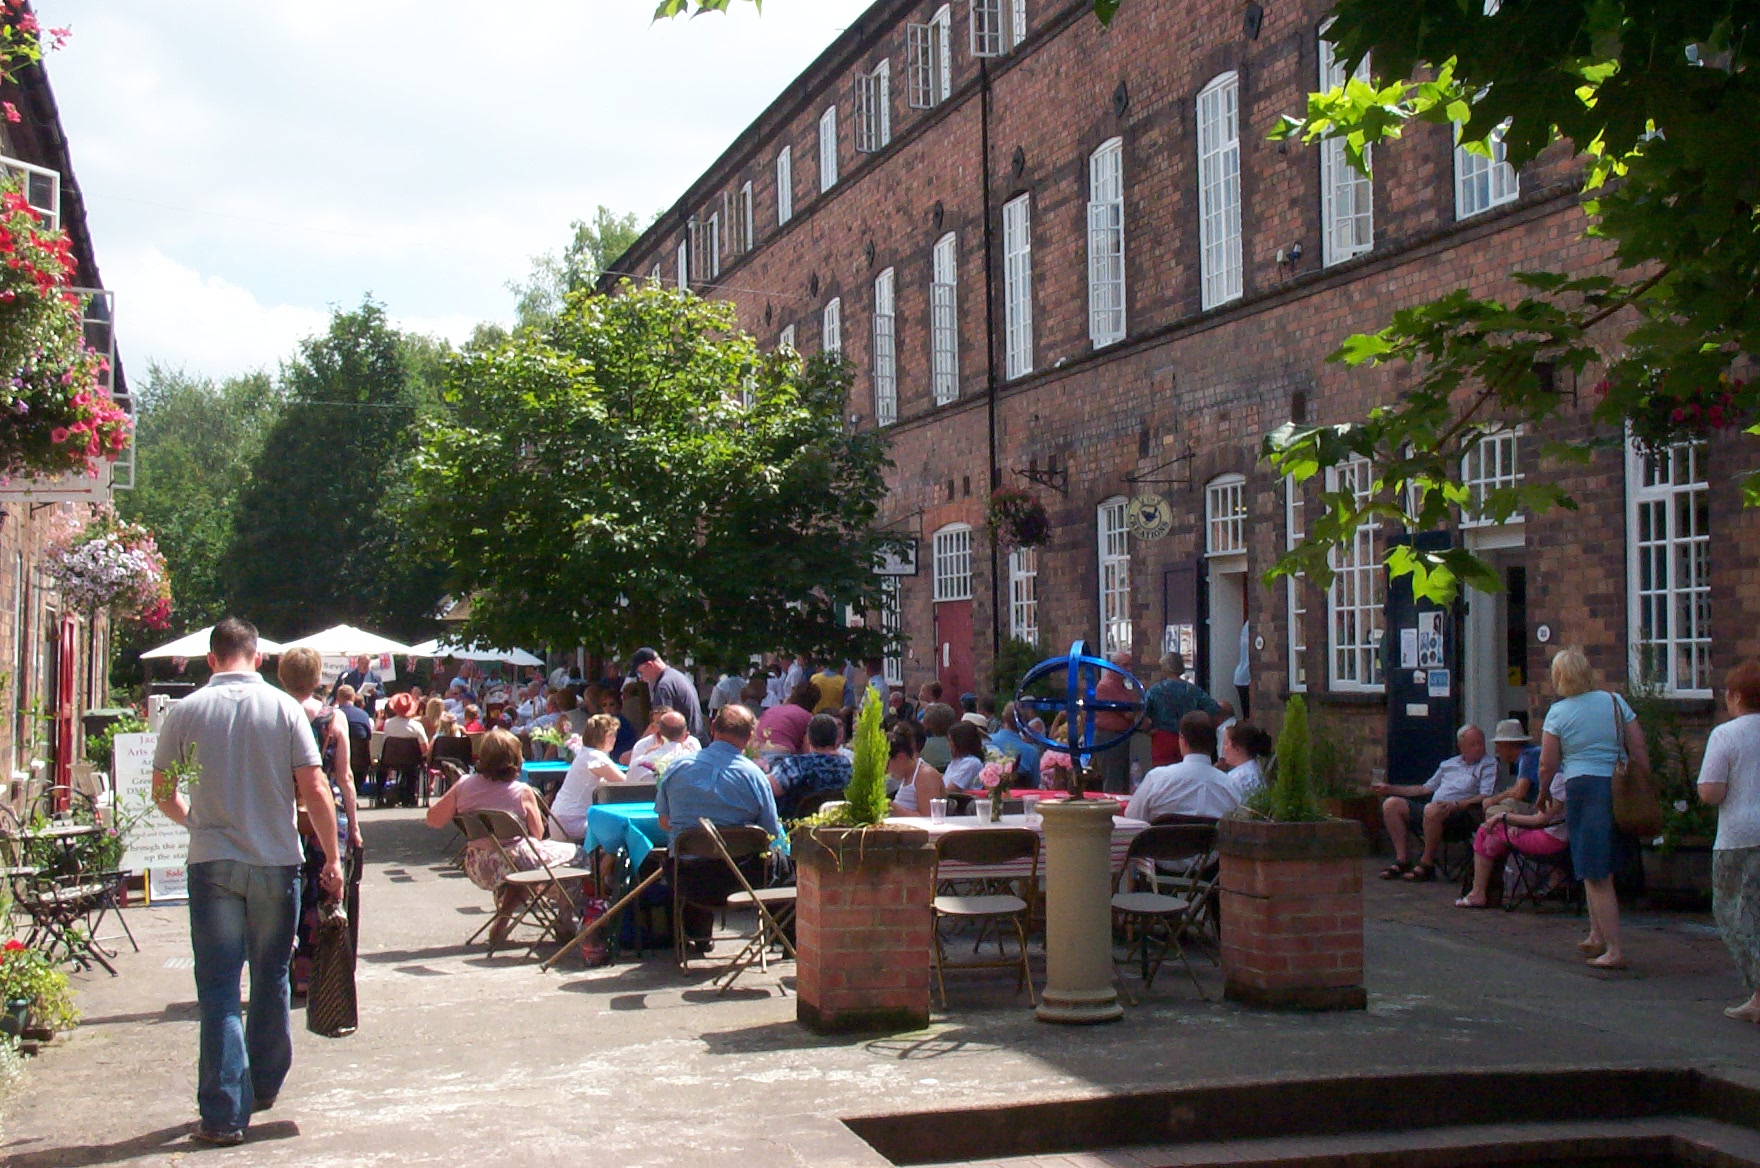 Enjoy a 'Night on the Tiles' at Maws Craft Centre on 21st September as part of the Ironbridge Gorge World Heritage Festival.JPG